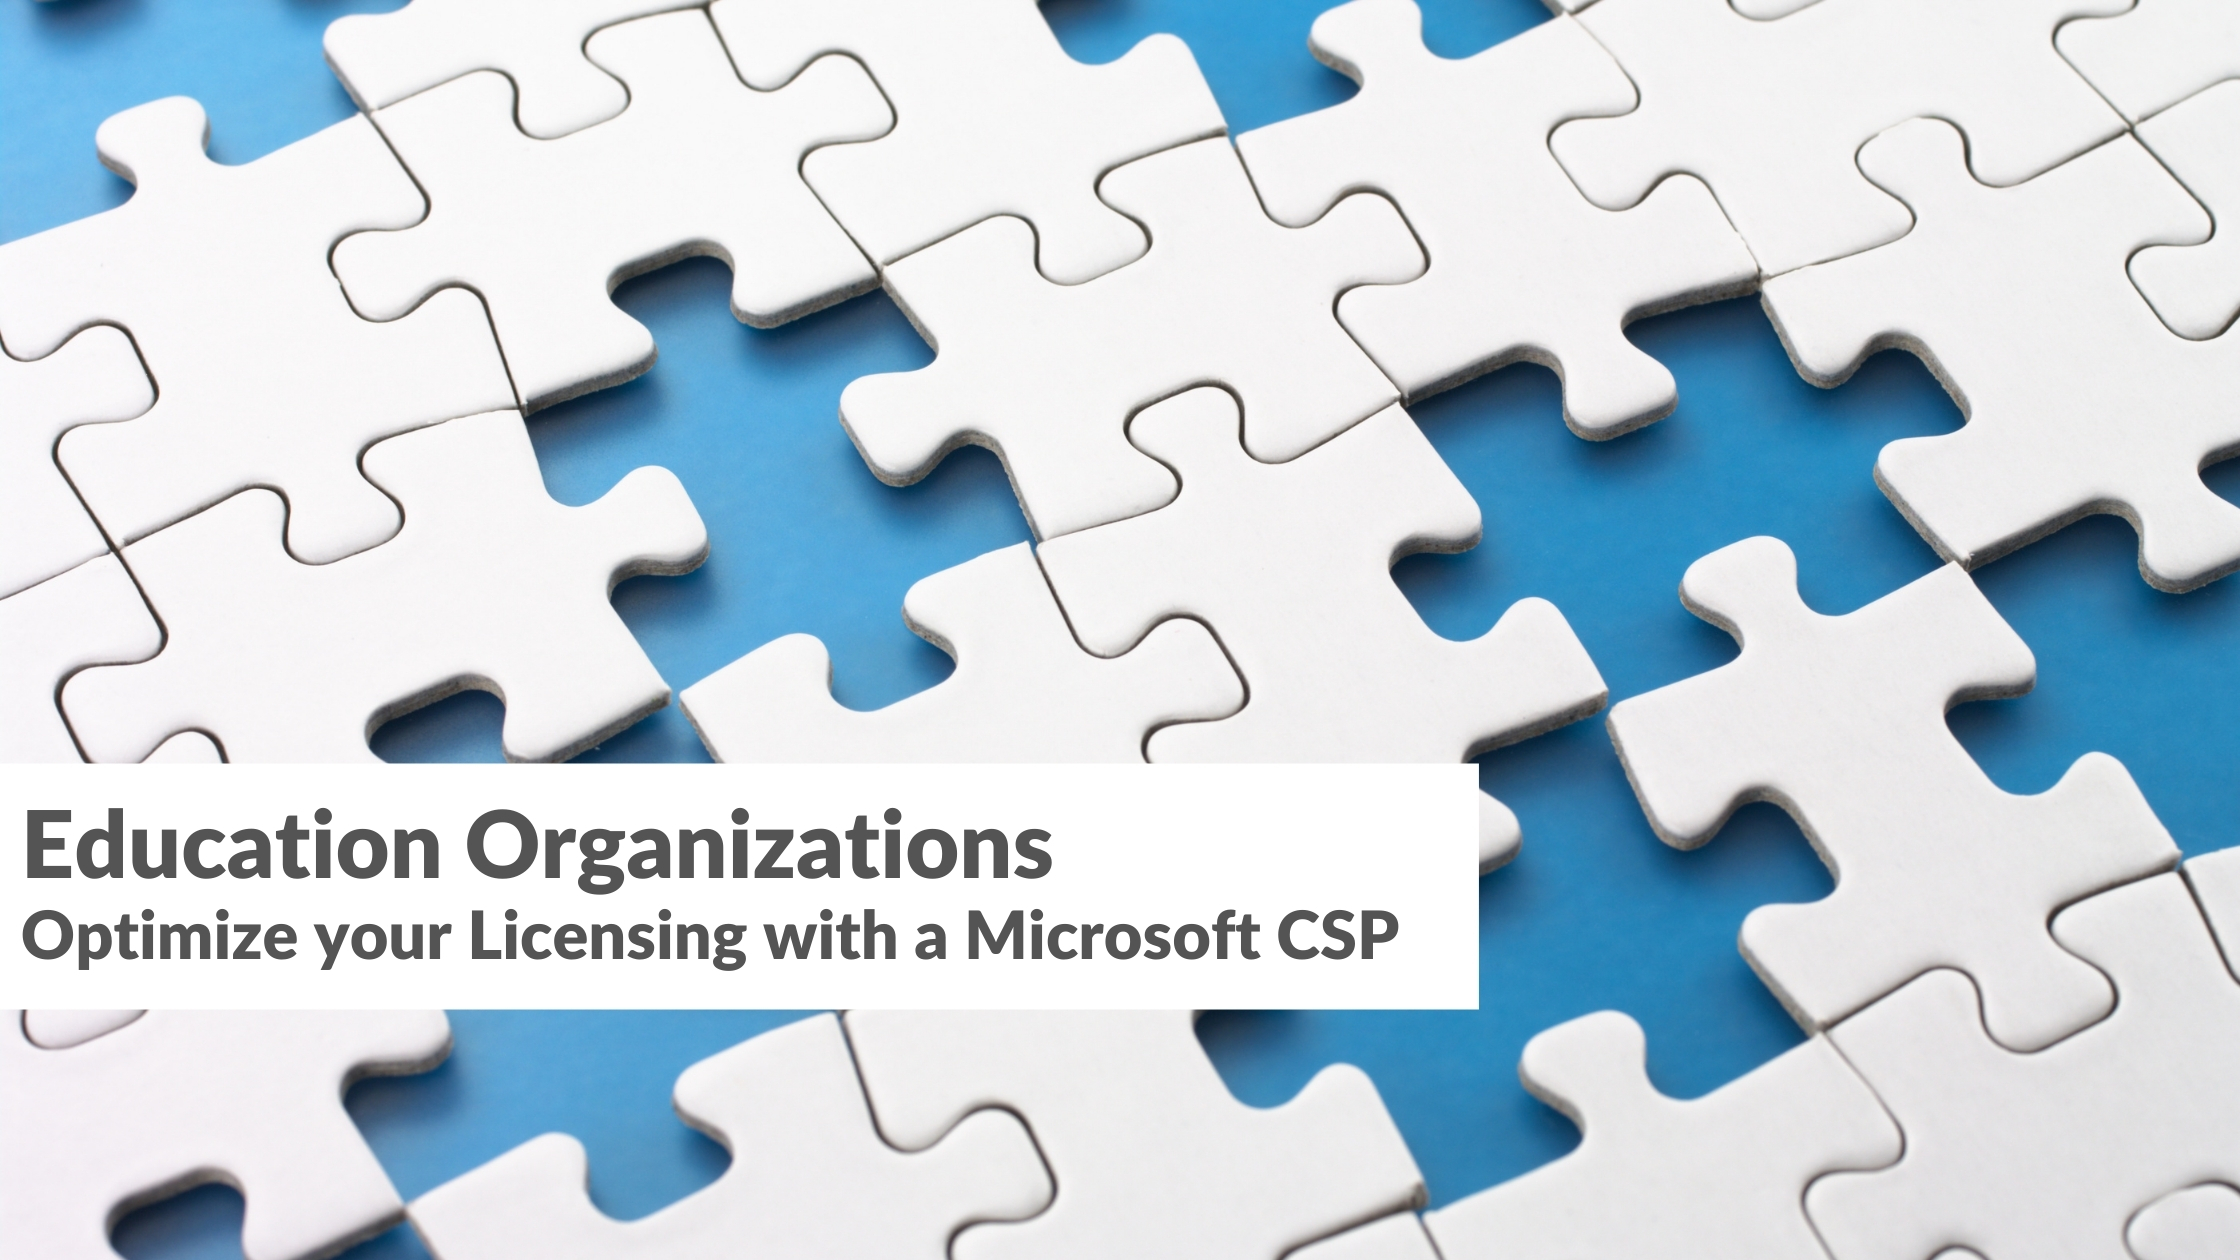 Educational Organizations | Optimize your Licensing with a Microsoft CSP